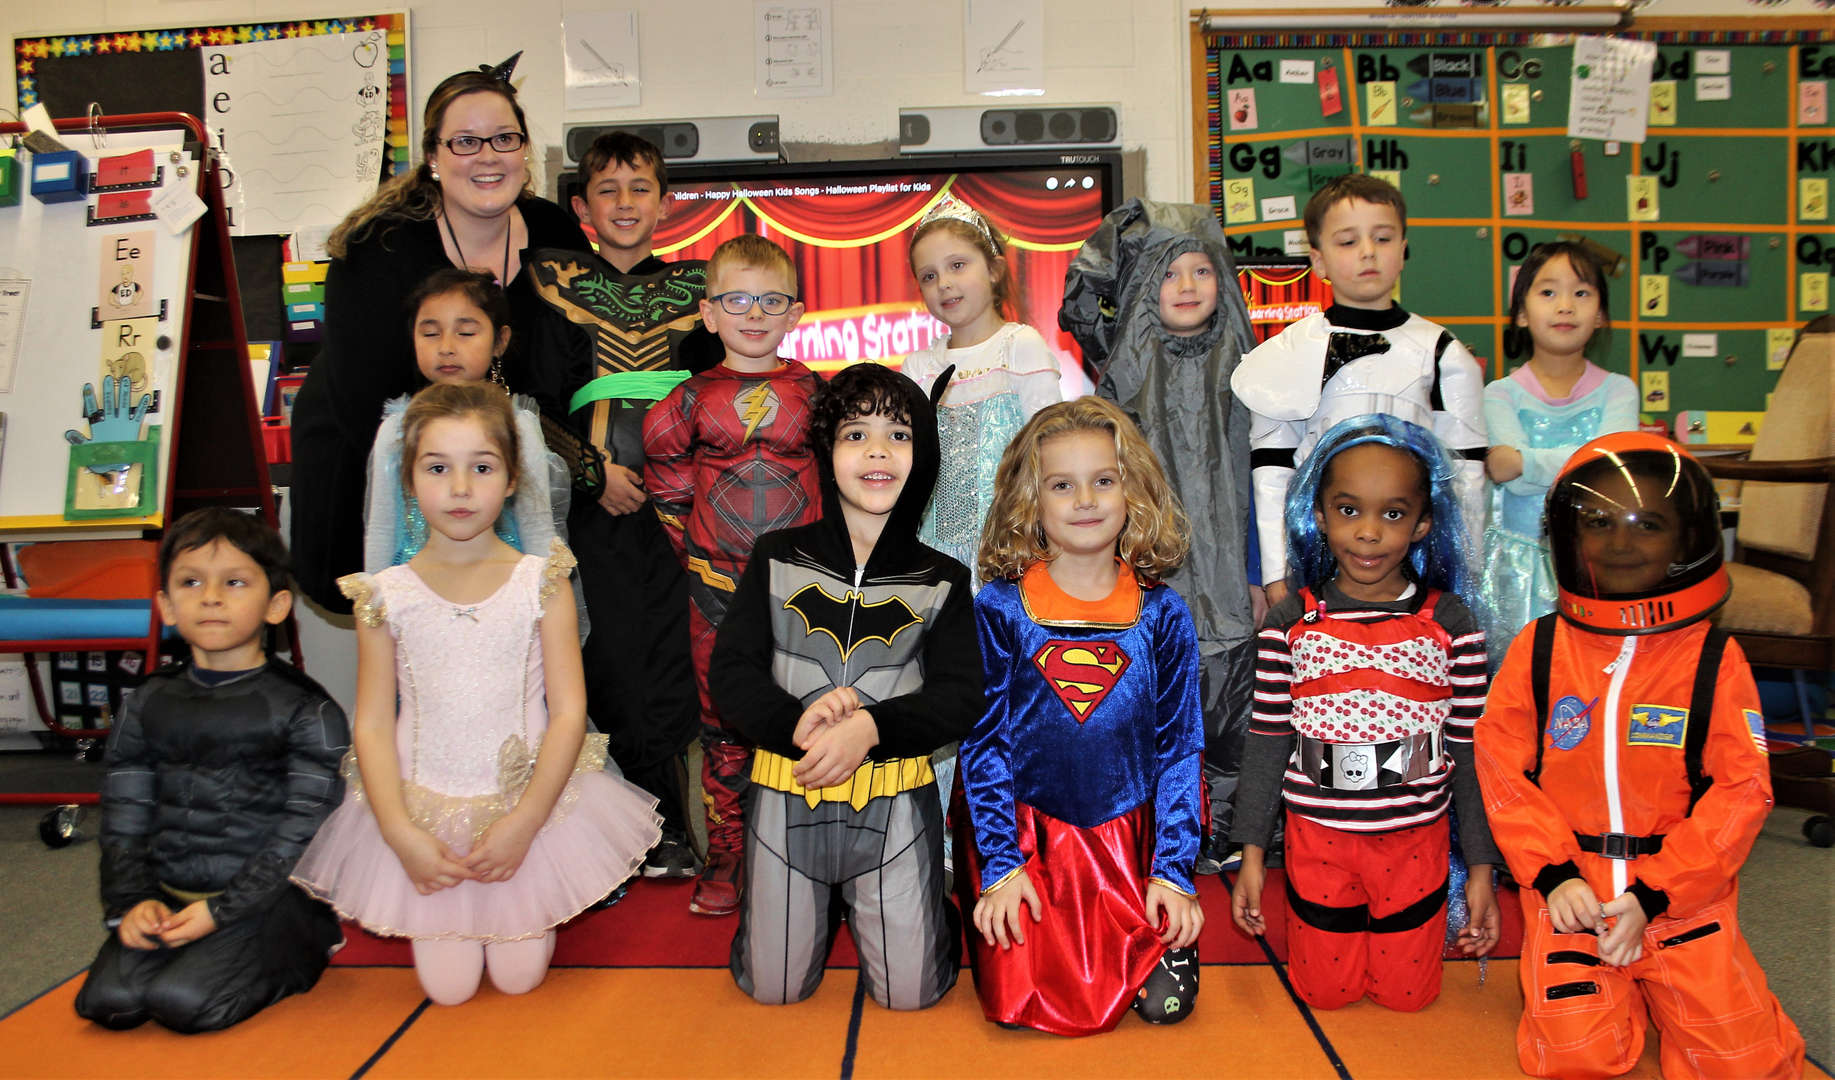 Students pose for a class photo on Halloween.